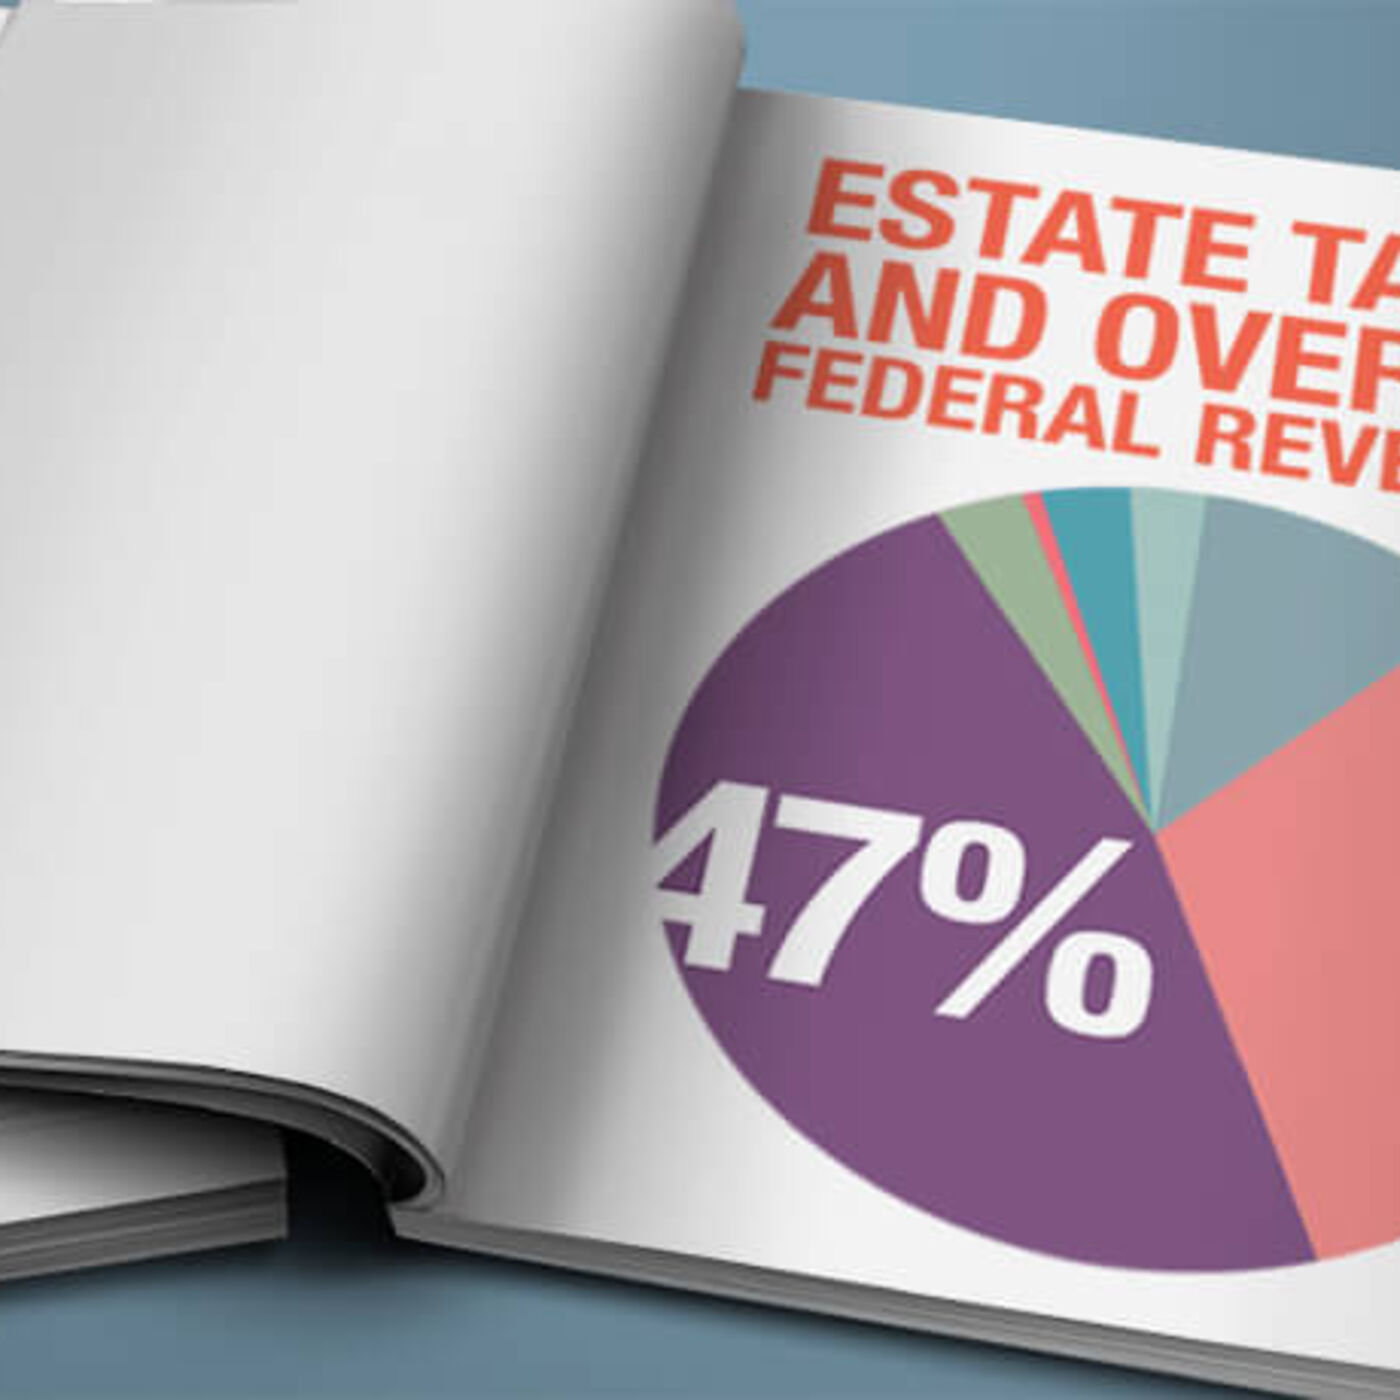 A BRIEF HISTORY OF ESTATE TAXES